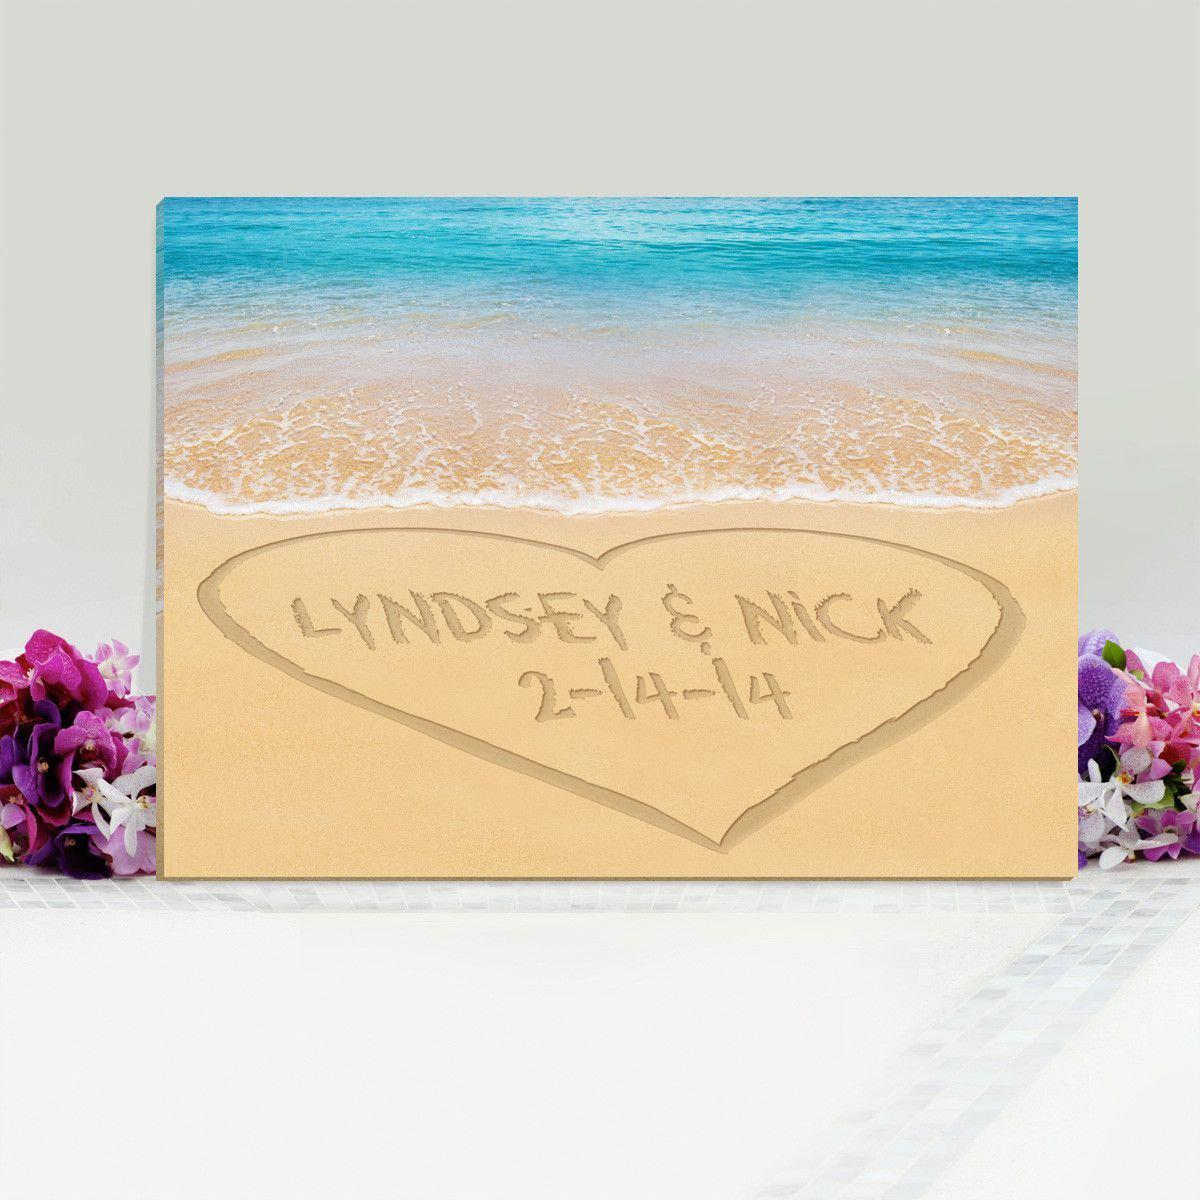 Personalized Canvas Prints - Custom Canvas Art